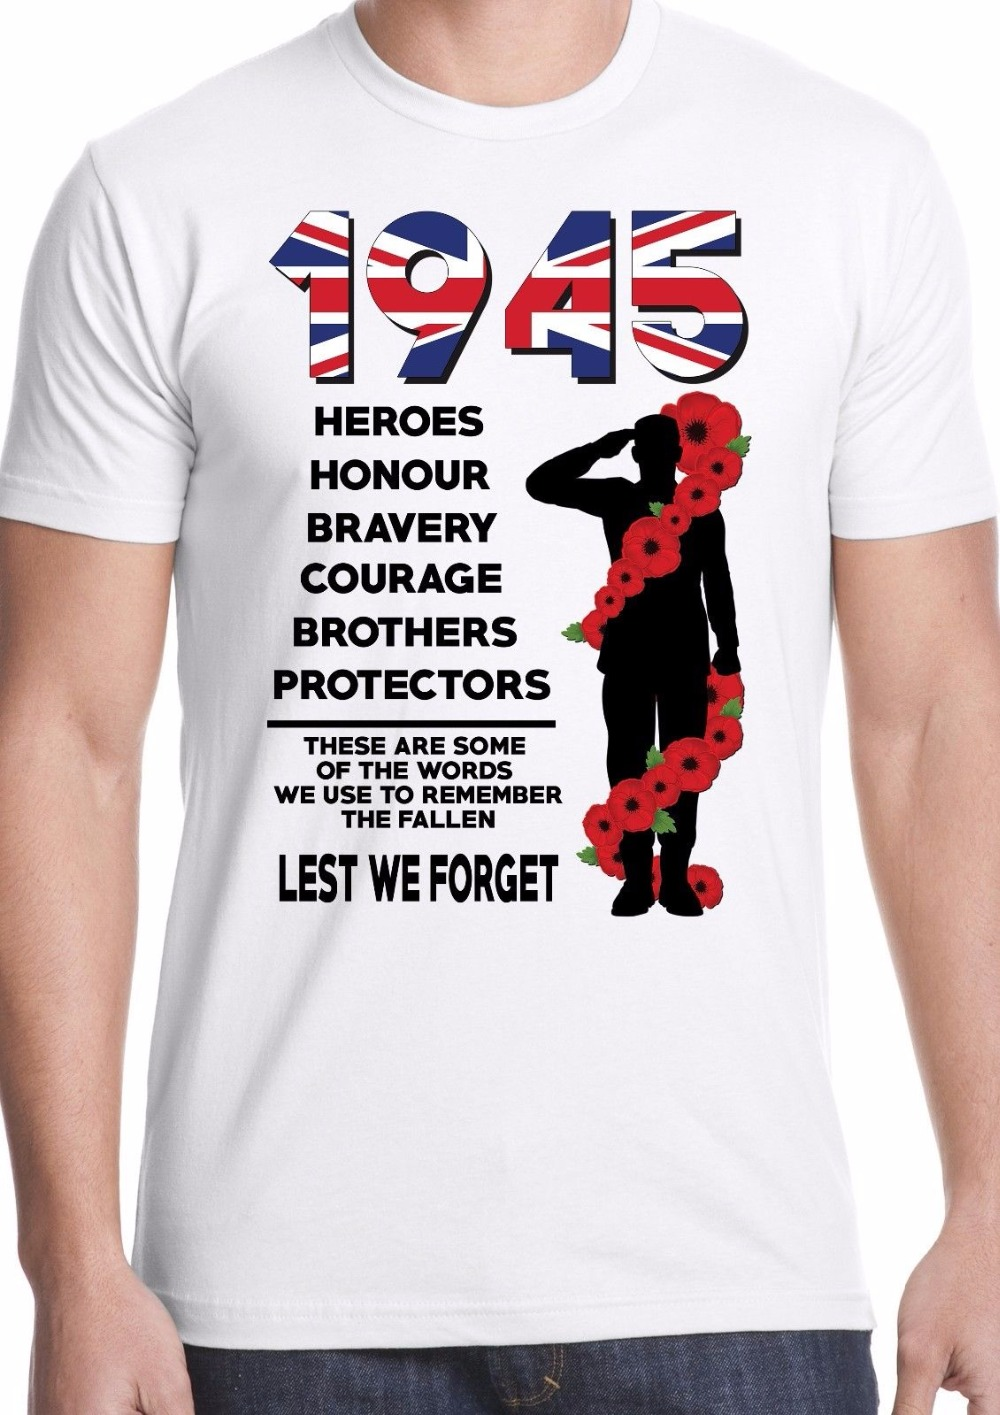 2019 New T Shirt Man Cotton Men Teeslest We Forget World War 2 Ww2 Remembrance Heroes Soldier Army Movie Tee Shirts Hoodies image